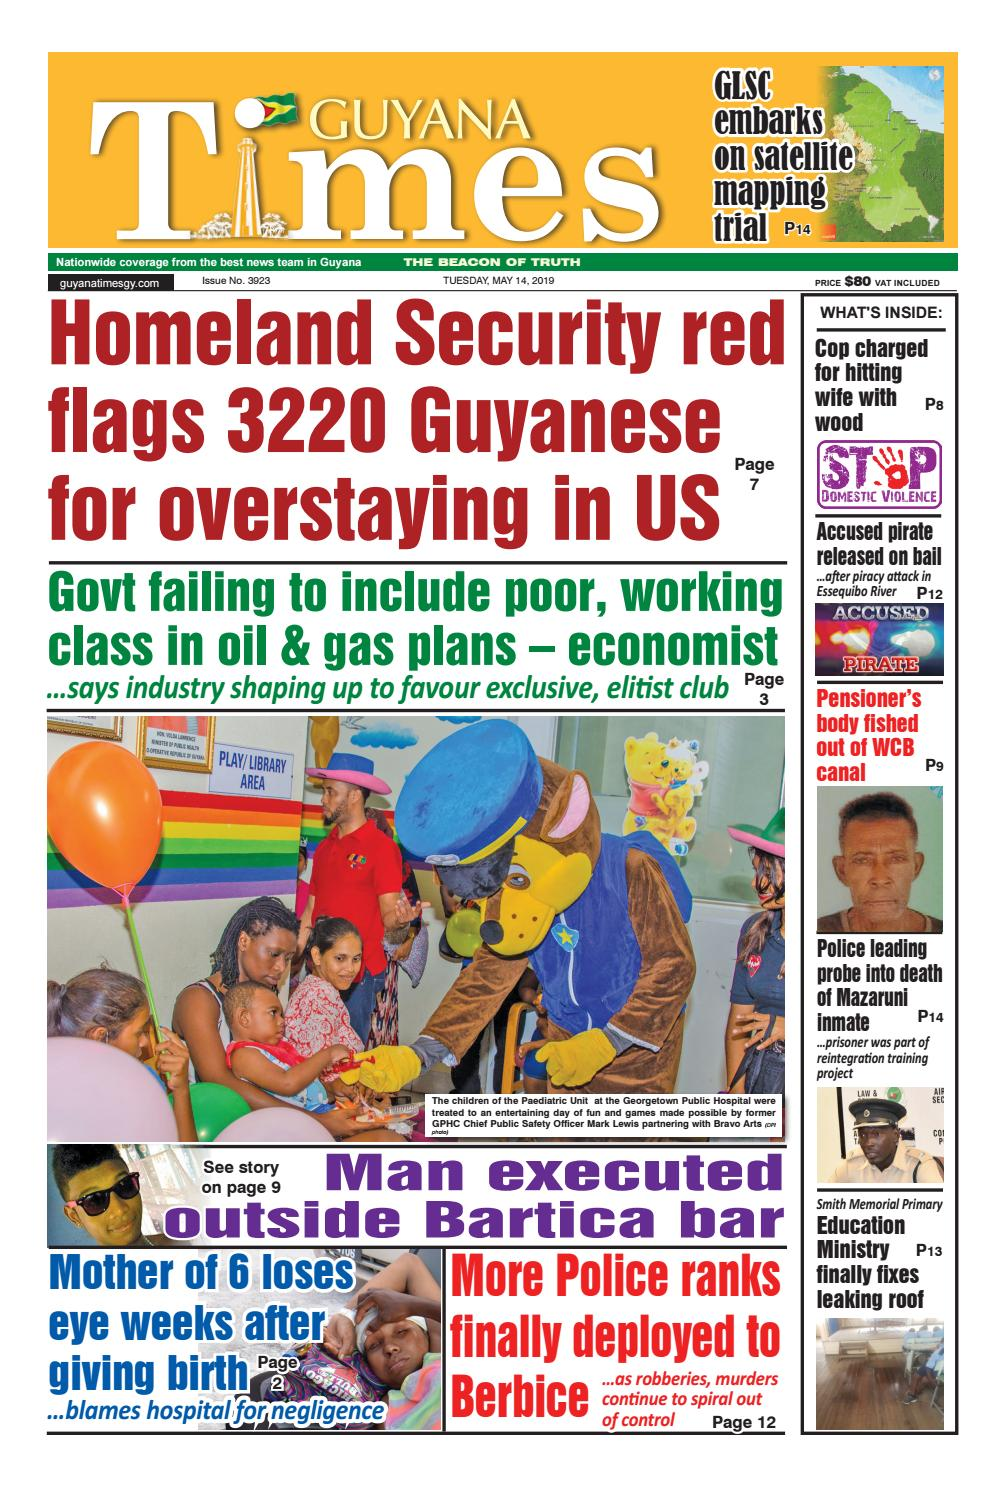 Guyana Times Tuesday May 14, 2019 by Gytimes - issuu